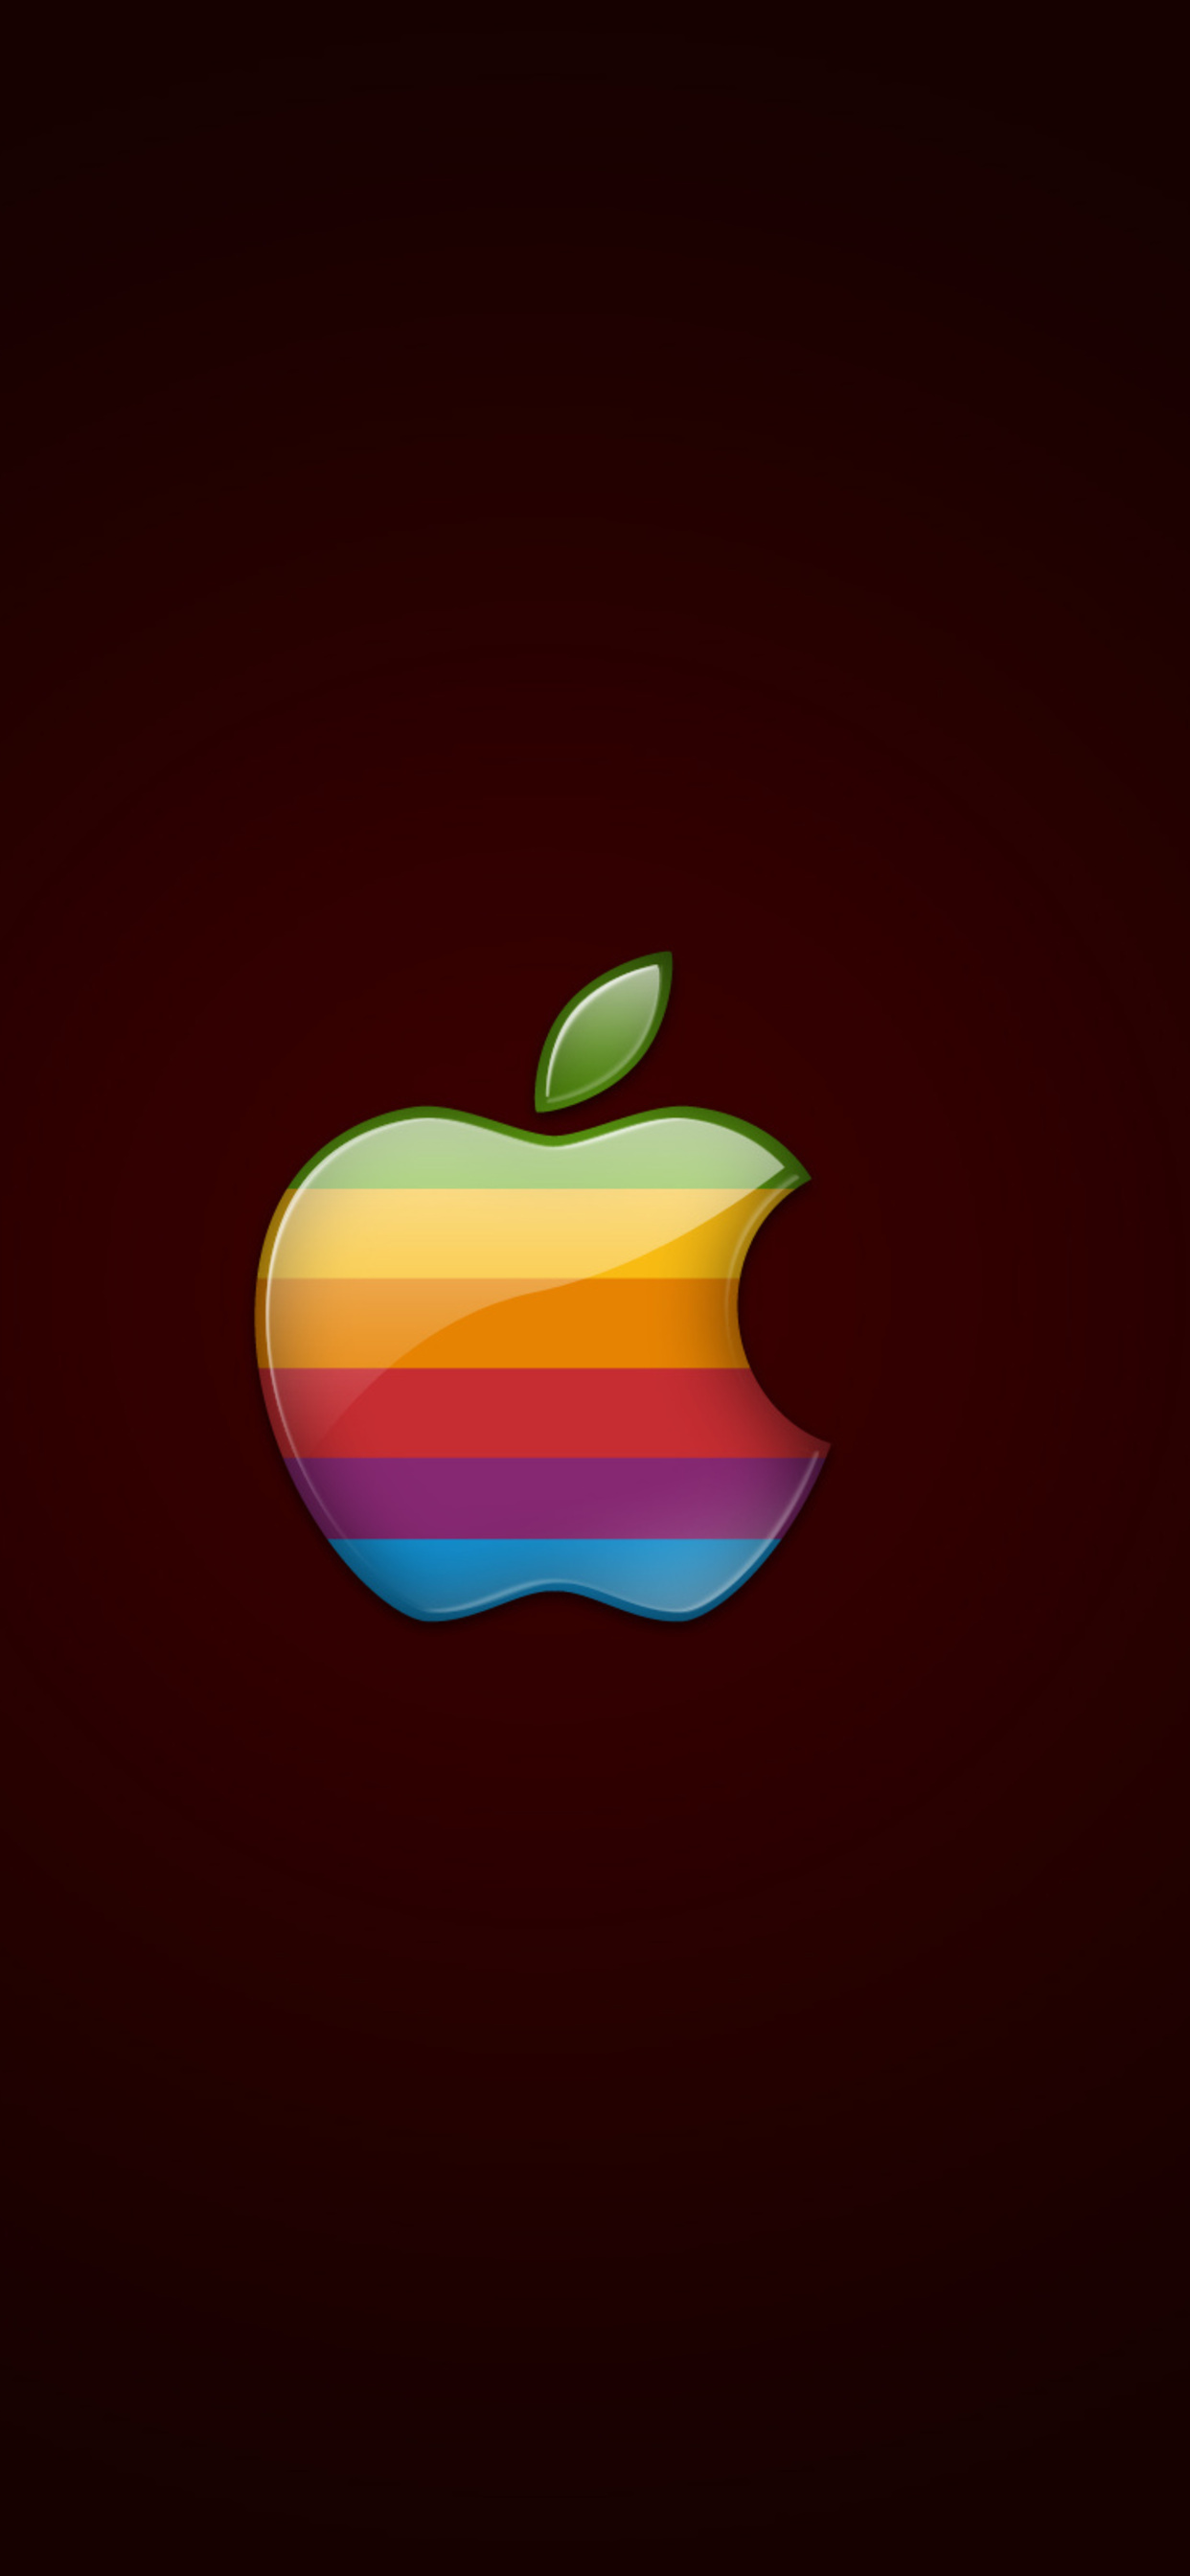 1242x2688 Retro Apple Logo Iphone Xs Max Hd 4k Wallpapers